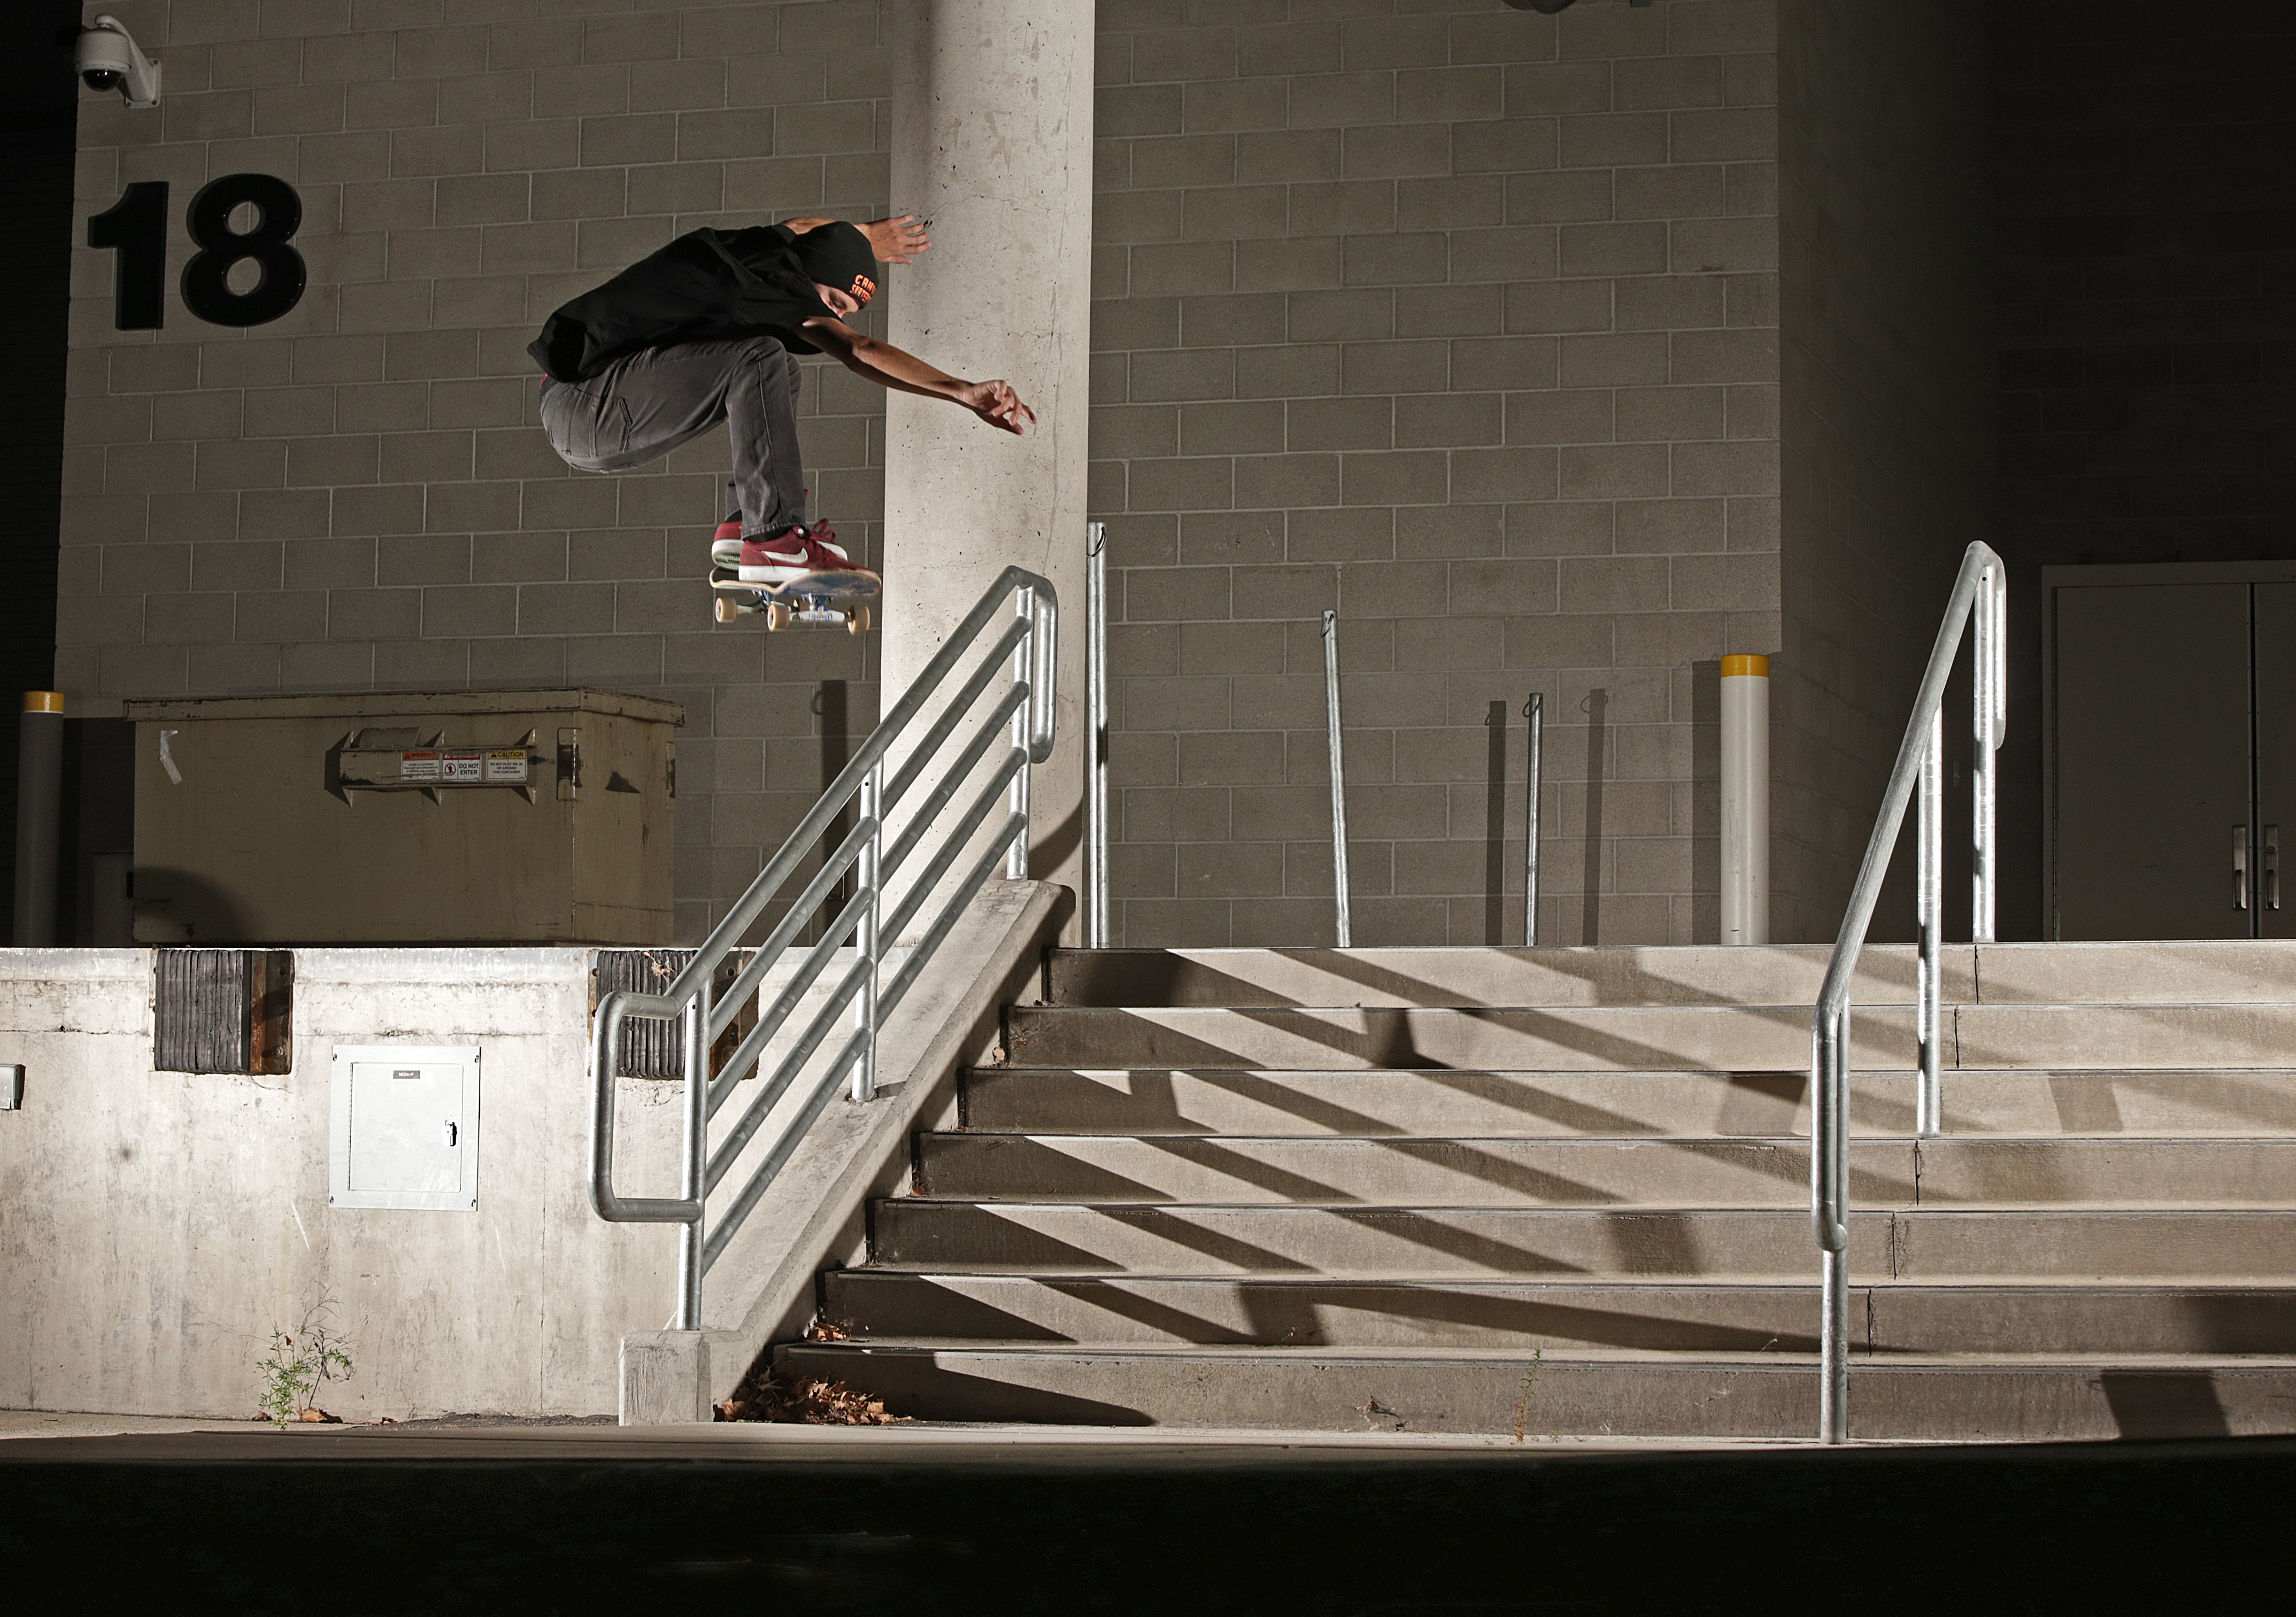 Quick set up, DePaul Madigan ollies this rail just before getting the boot. photo Volland